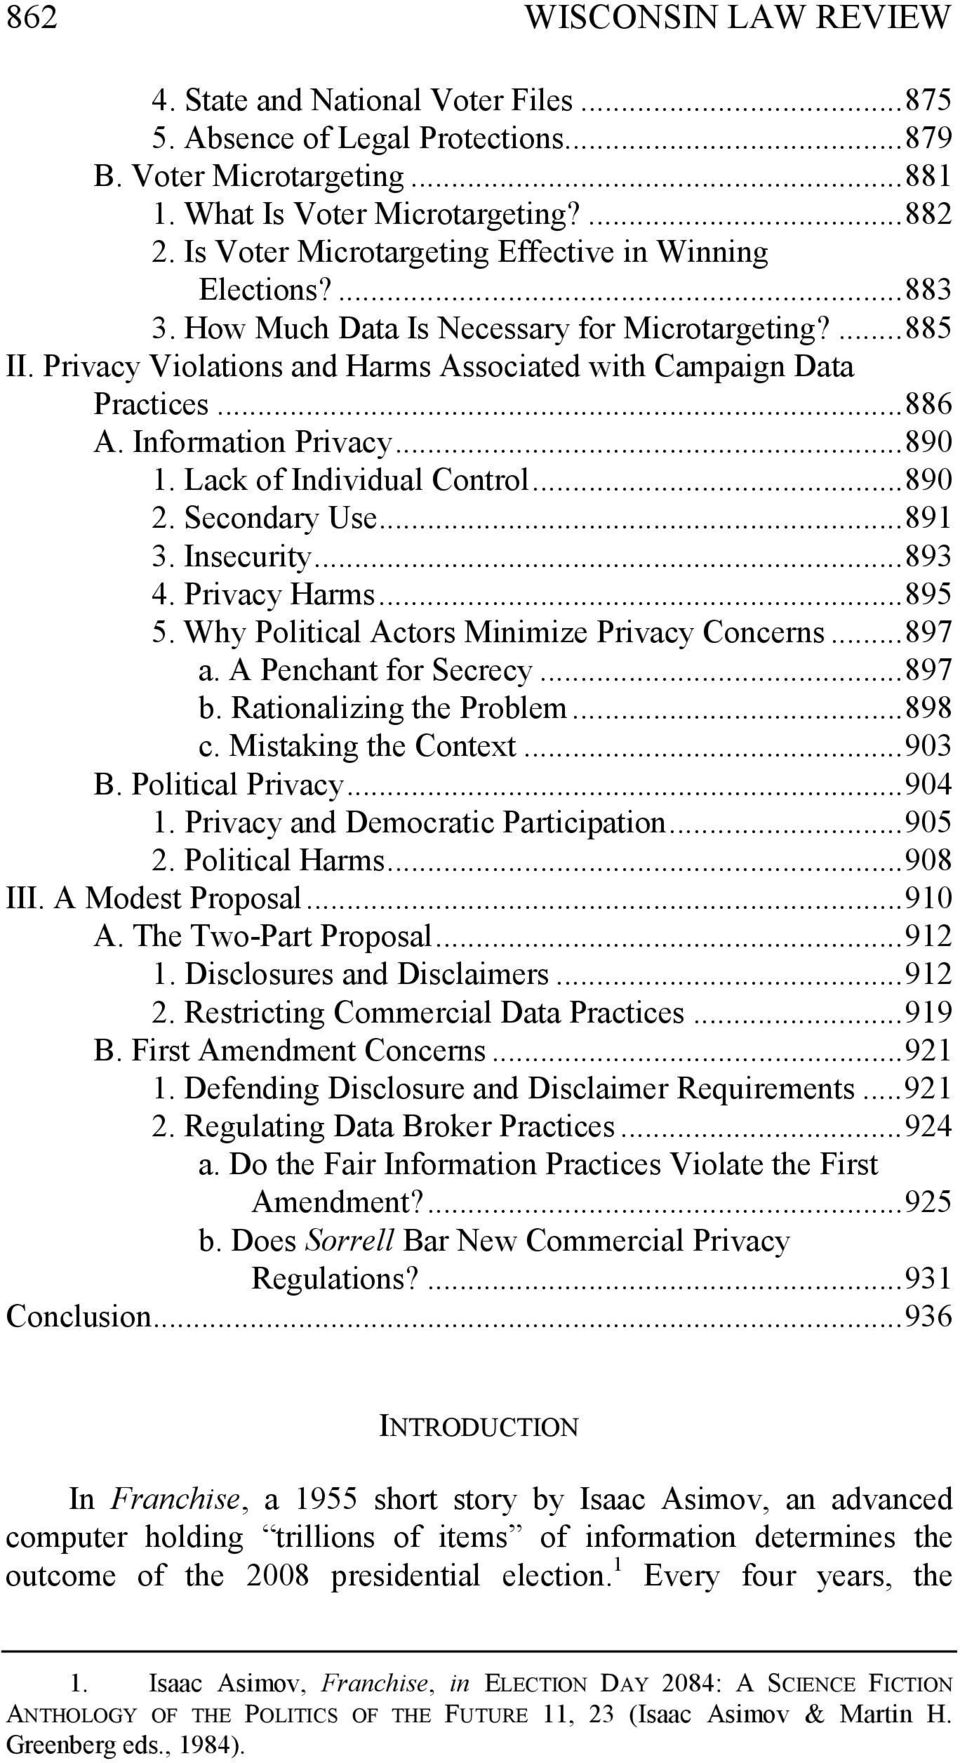 Information Privacy... 890 1. Lack of Individual Control... 890 2. Secondary Use... 891 3. Insecurity... 893 4. Privacy Harms... 895 5. Why Political Actors Minimize Privacy Concerns... 897 a.